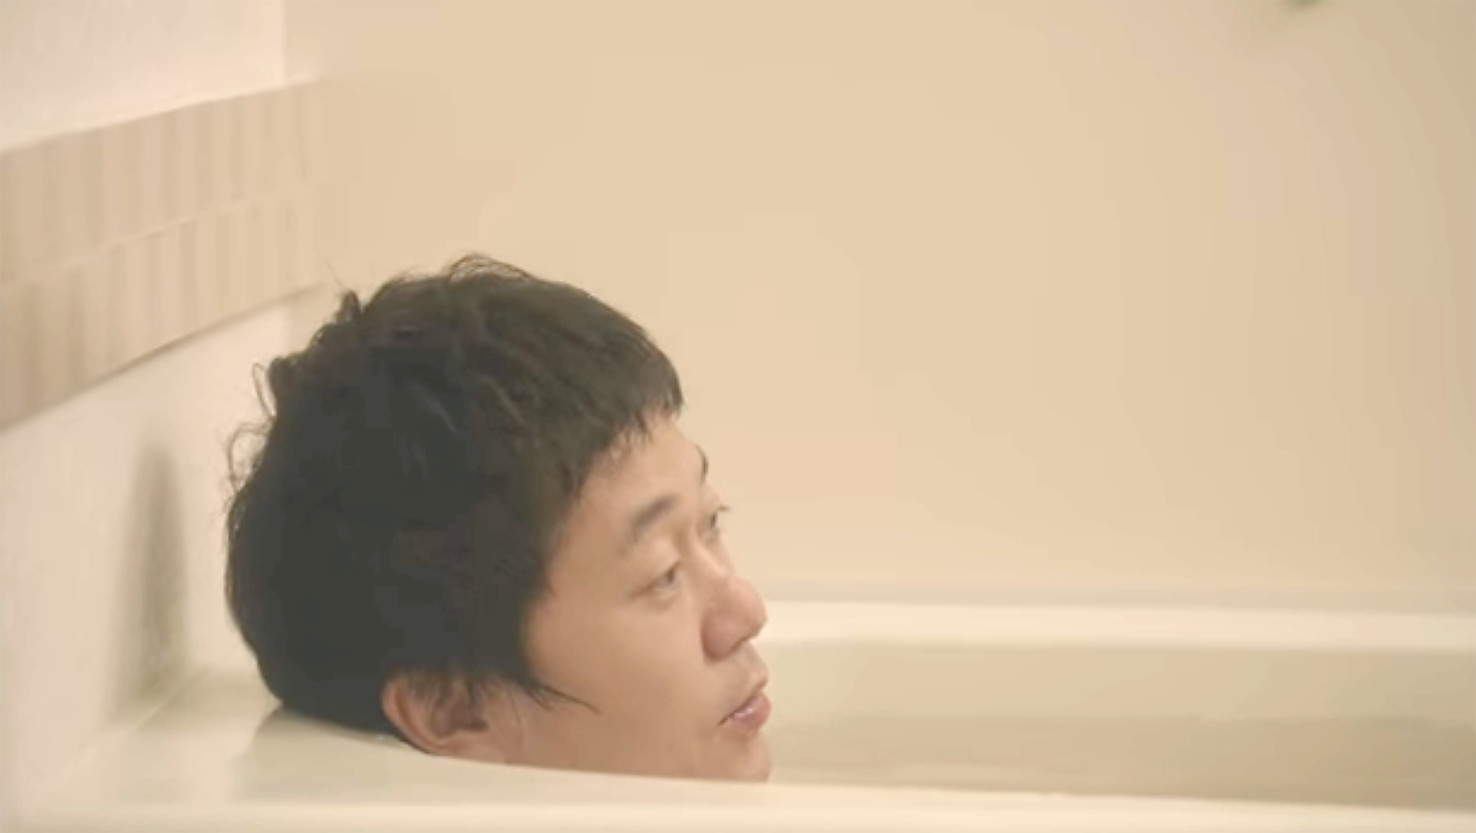 A father's plight: Soaking away his troubles in a bath before his son's birthday. | YOUTUBE